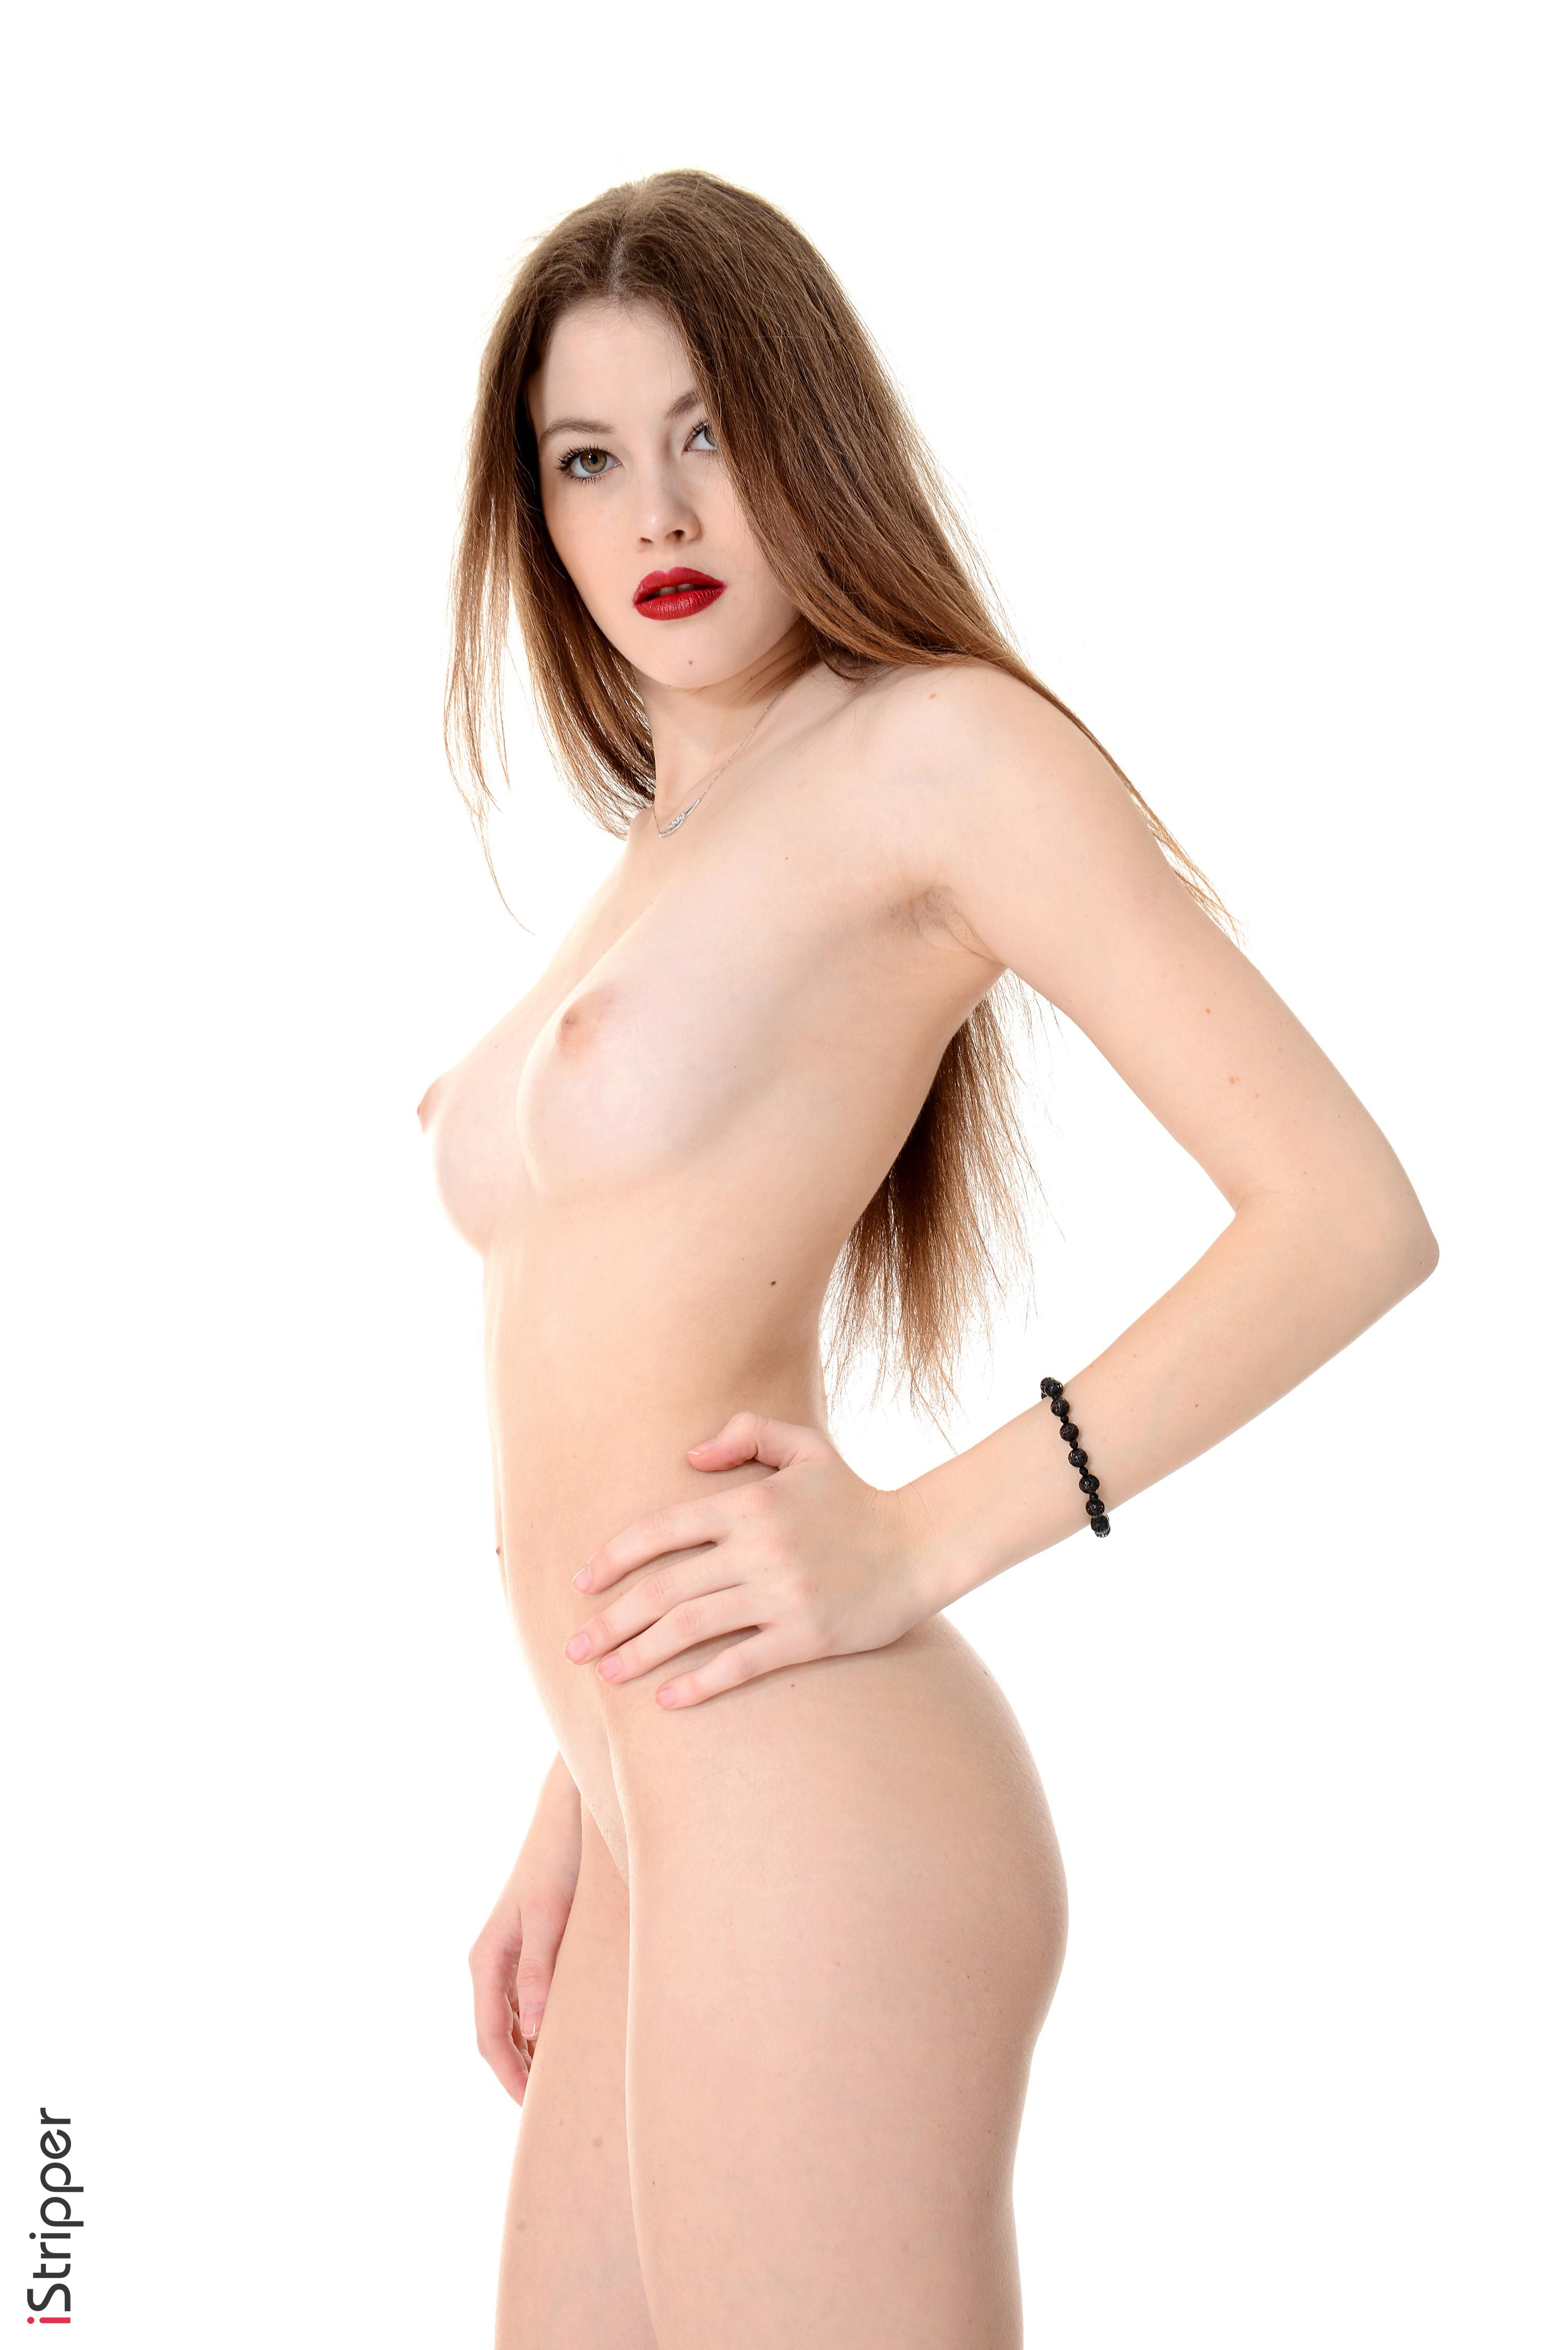 shaved pussy free